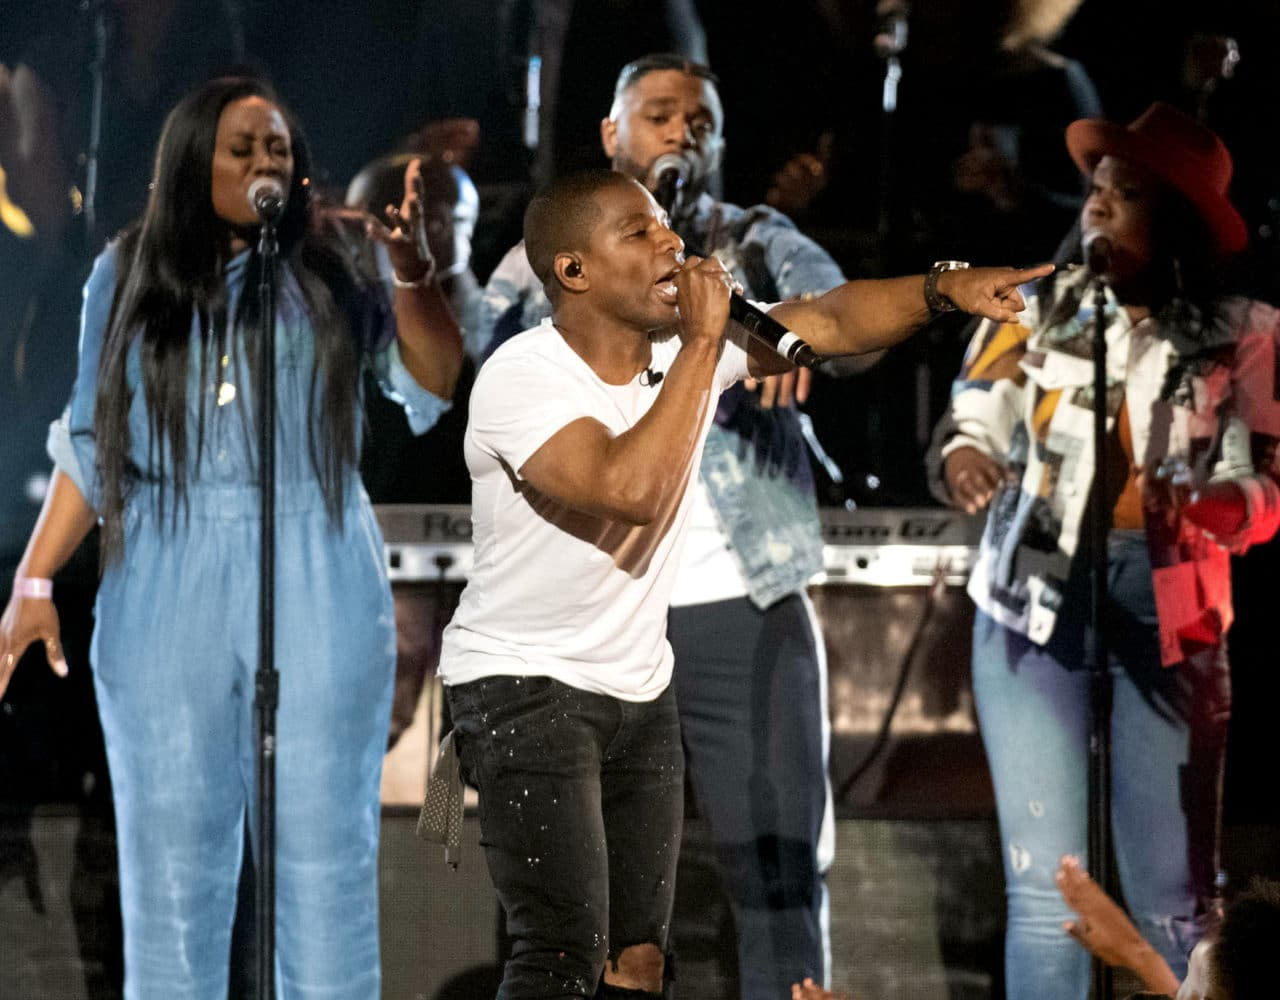 The Biggest Night in Gospel Music Airs on BET This Sunday